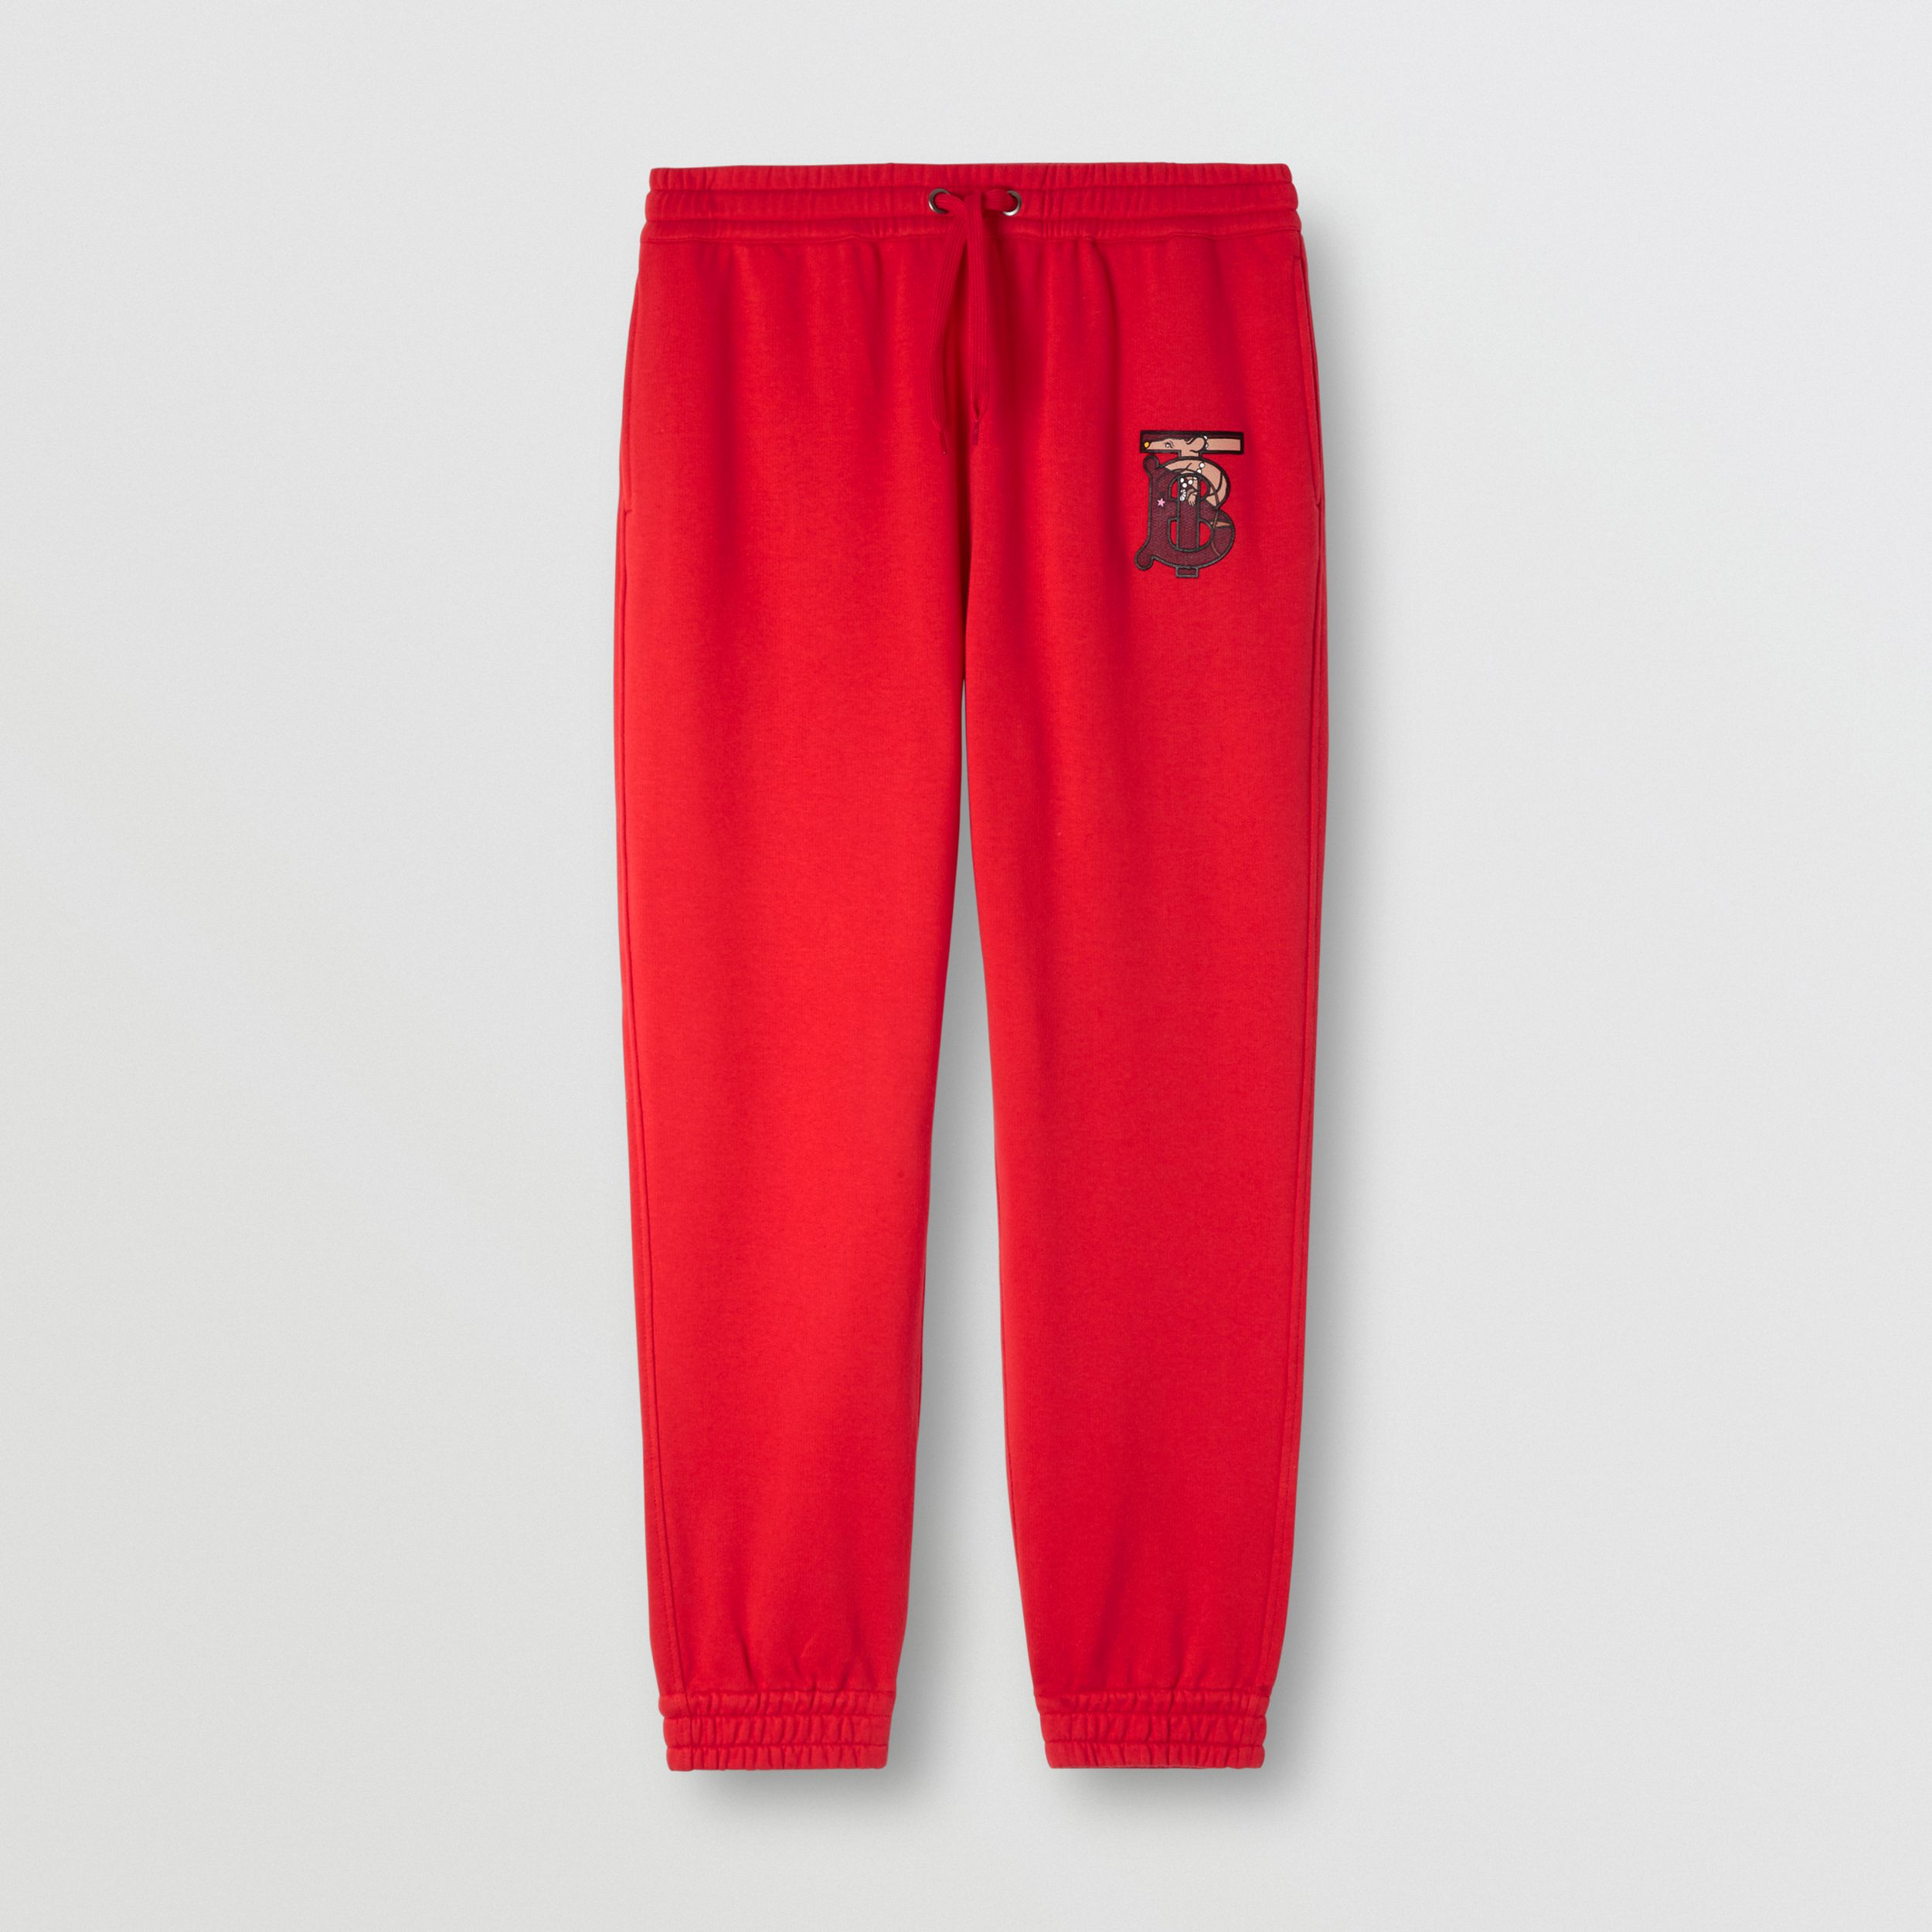 Monogram Motif Cotton Trackpants in Bright Red - Men | Burberry Australia - 3